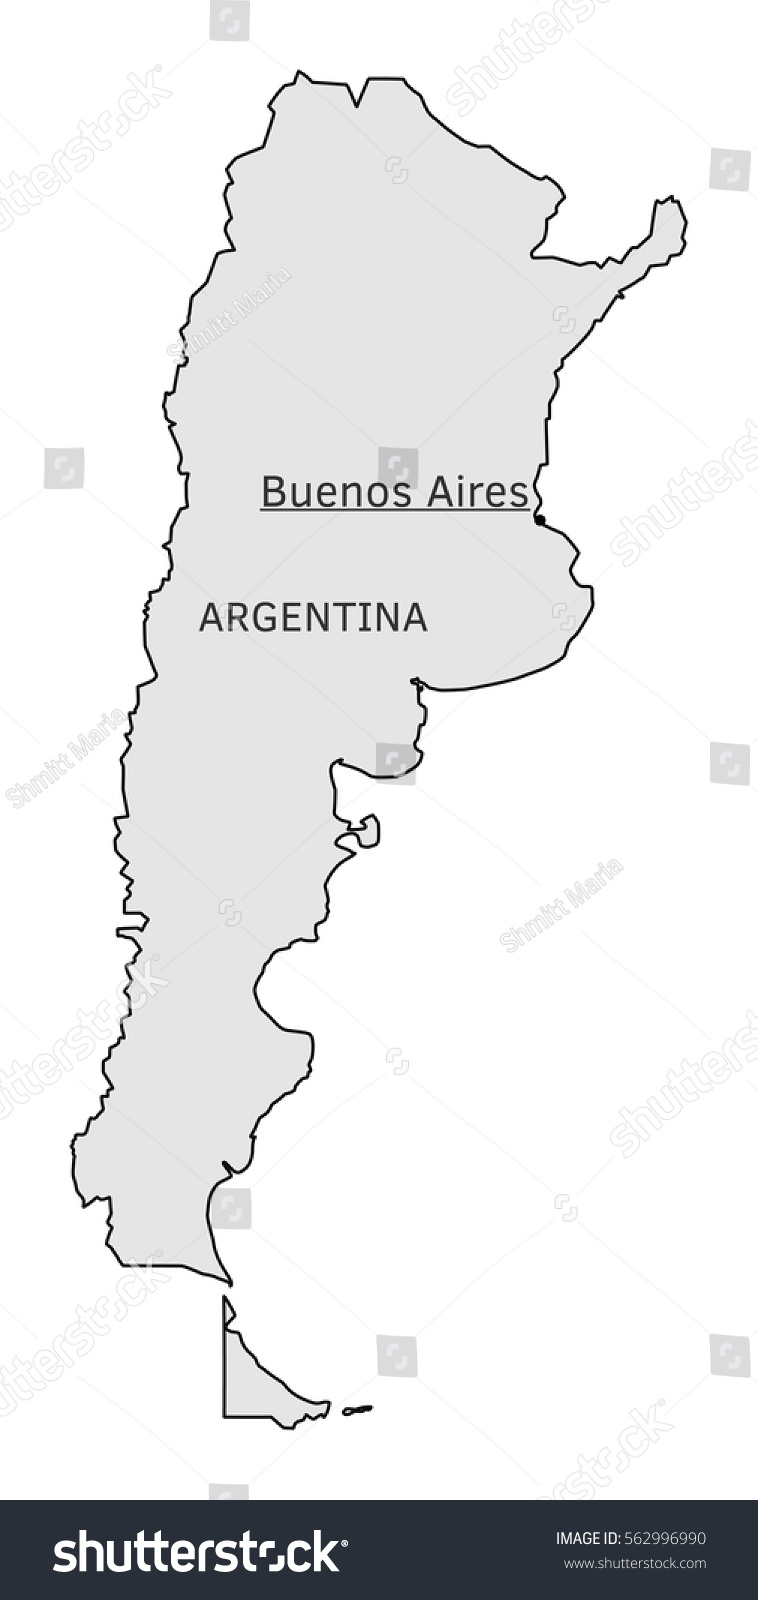 Argentina Silhouette Map Buenos Aires Capital Stock Vector - Argentina map vector